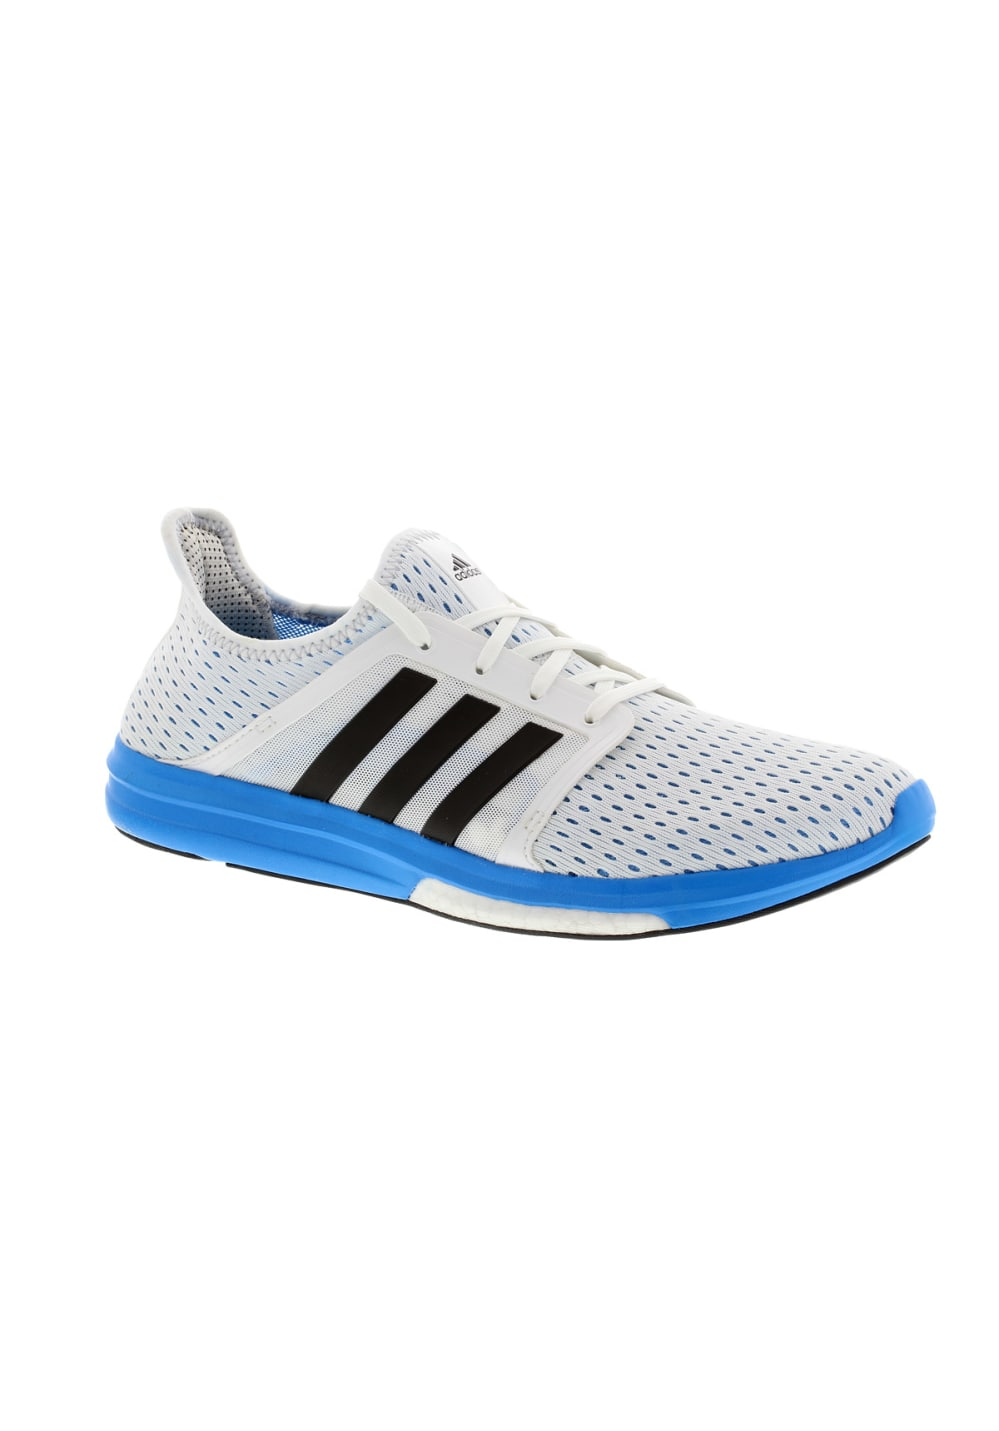 34d3766064884b adidas CC Sonic Boost - Running shoes for Men - Grey